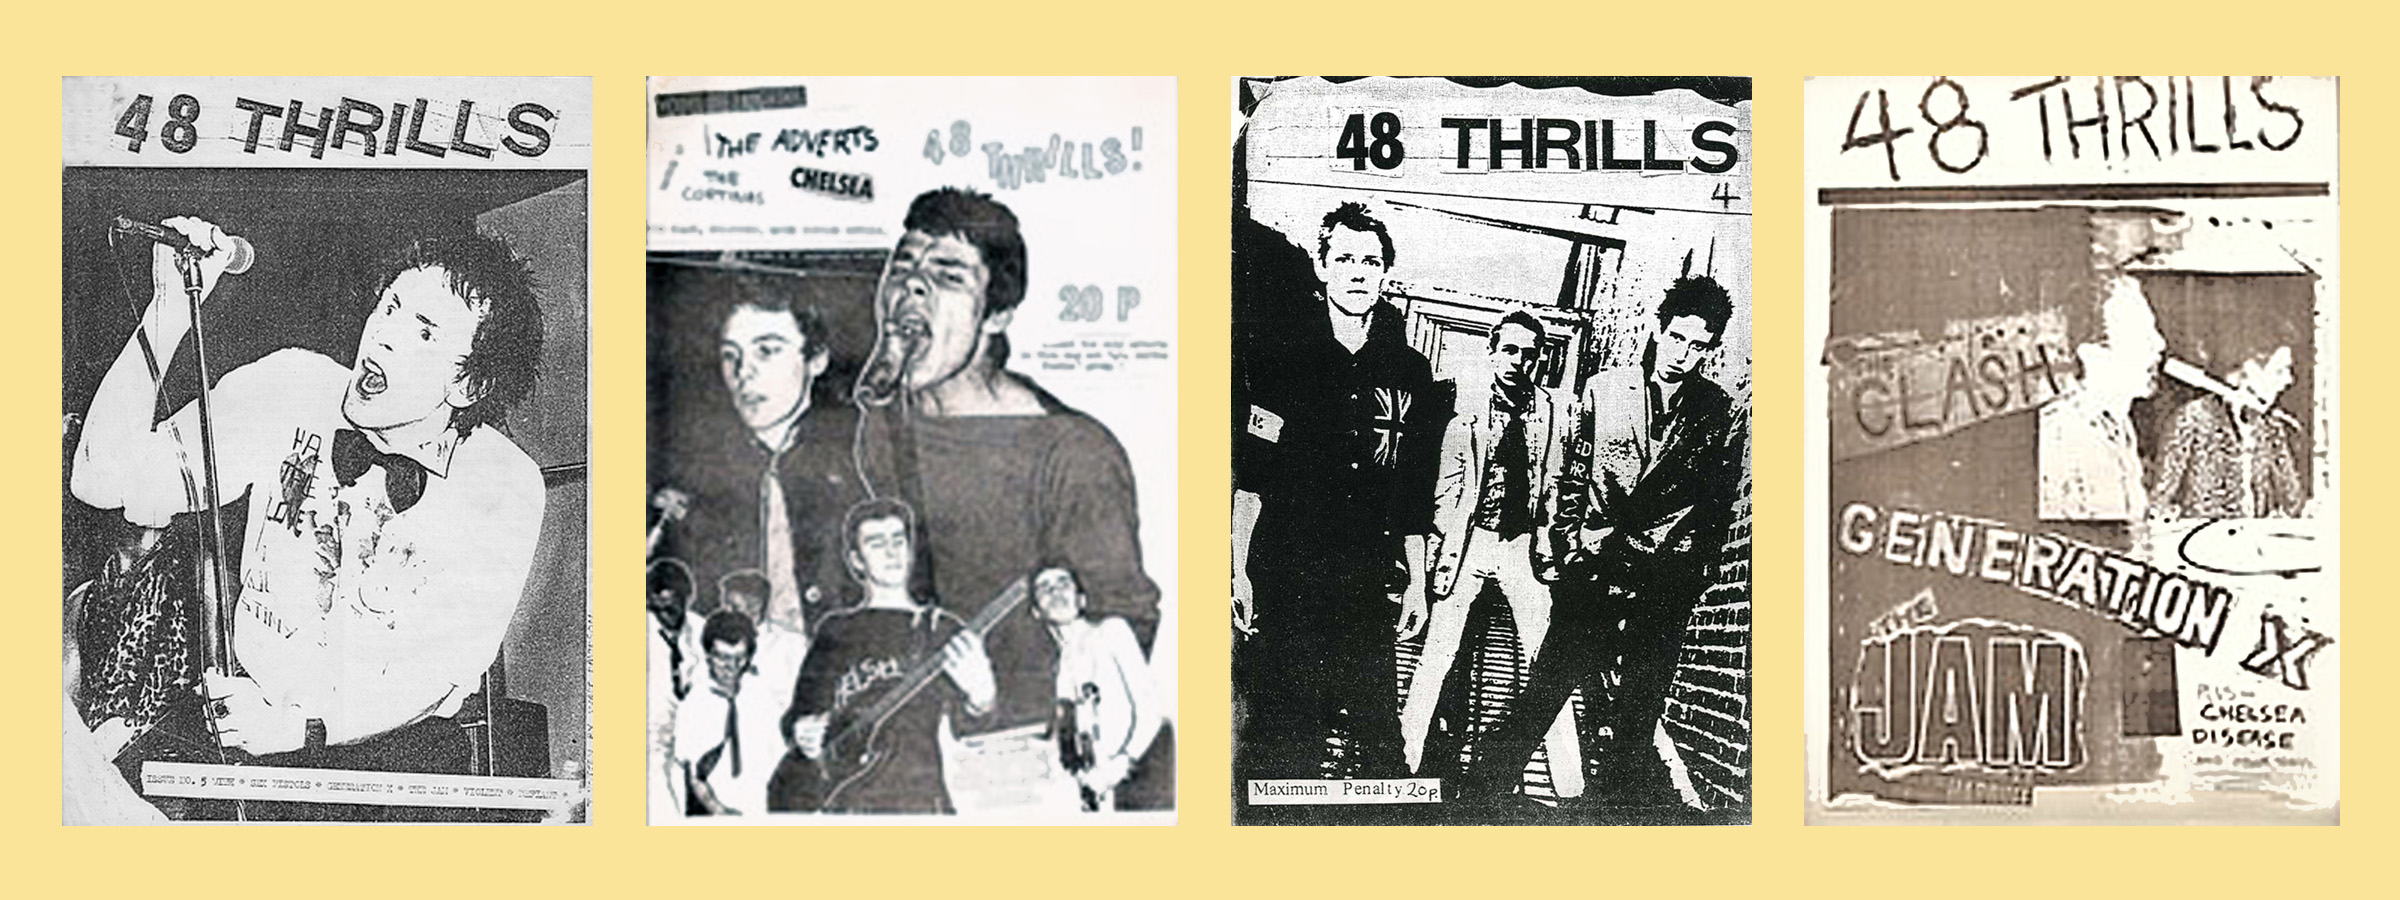 1960s Furniture Punk And New Music Fanzines Late 1970s To Early 1980s